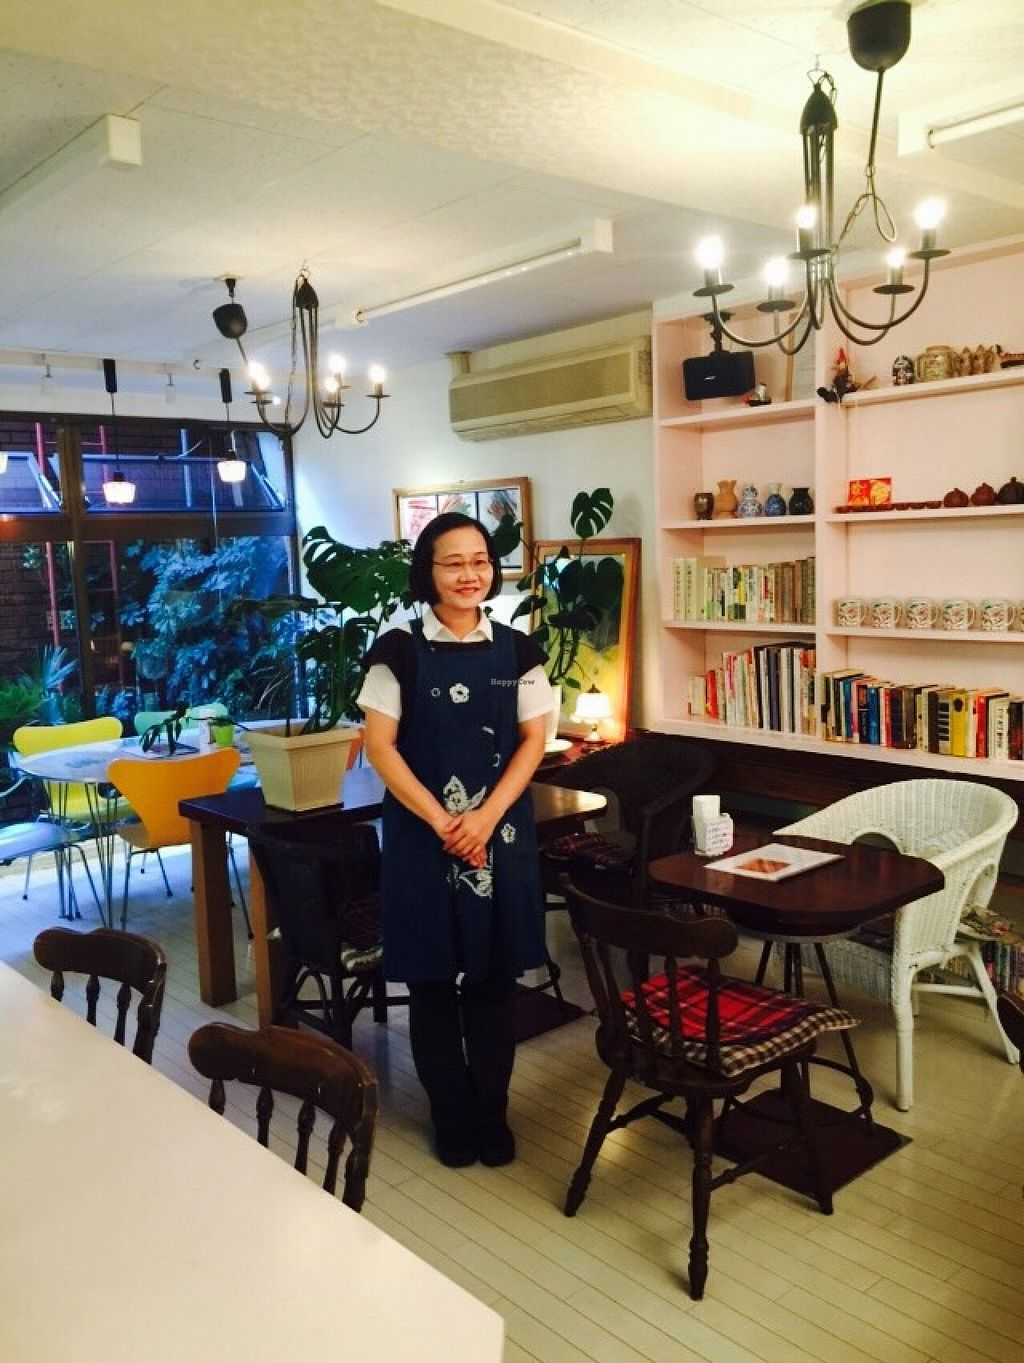 """Photo of CLOSED: Seven Bells Cafe  by <a href=""""/members/profile/Greg%20Meilien%20Winder"""">Greg Meilien Winder</a> <br/>This is Meilien (Belien) the owner of this great new Vegetarian and all Vegan restaurant, in Tachikawa Tokyo, Japan. The food and service is excellent, English, Japanese, Taiwanese and Chinese spoken.  <br/> October 30, 2015  - <a href='/contact/abuse/image/64758/123274'>Report</a>"""